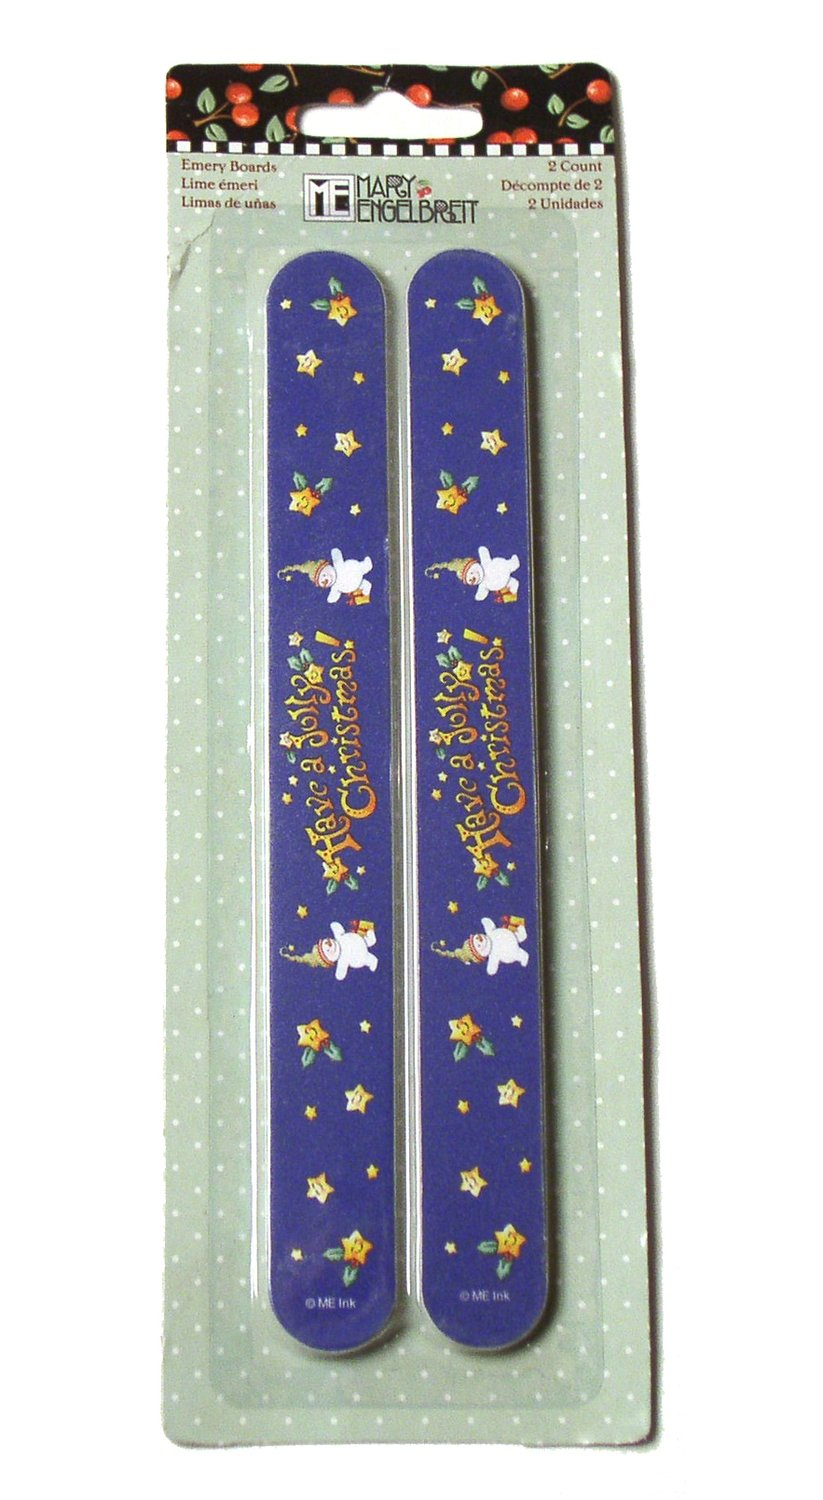 Emery Boards (Set of 2): Have a Jolly Christmas